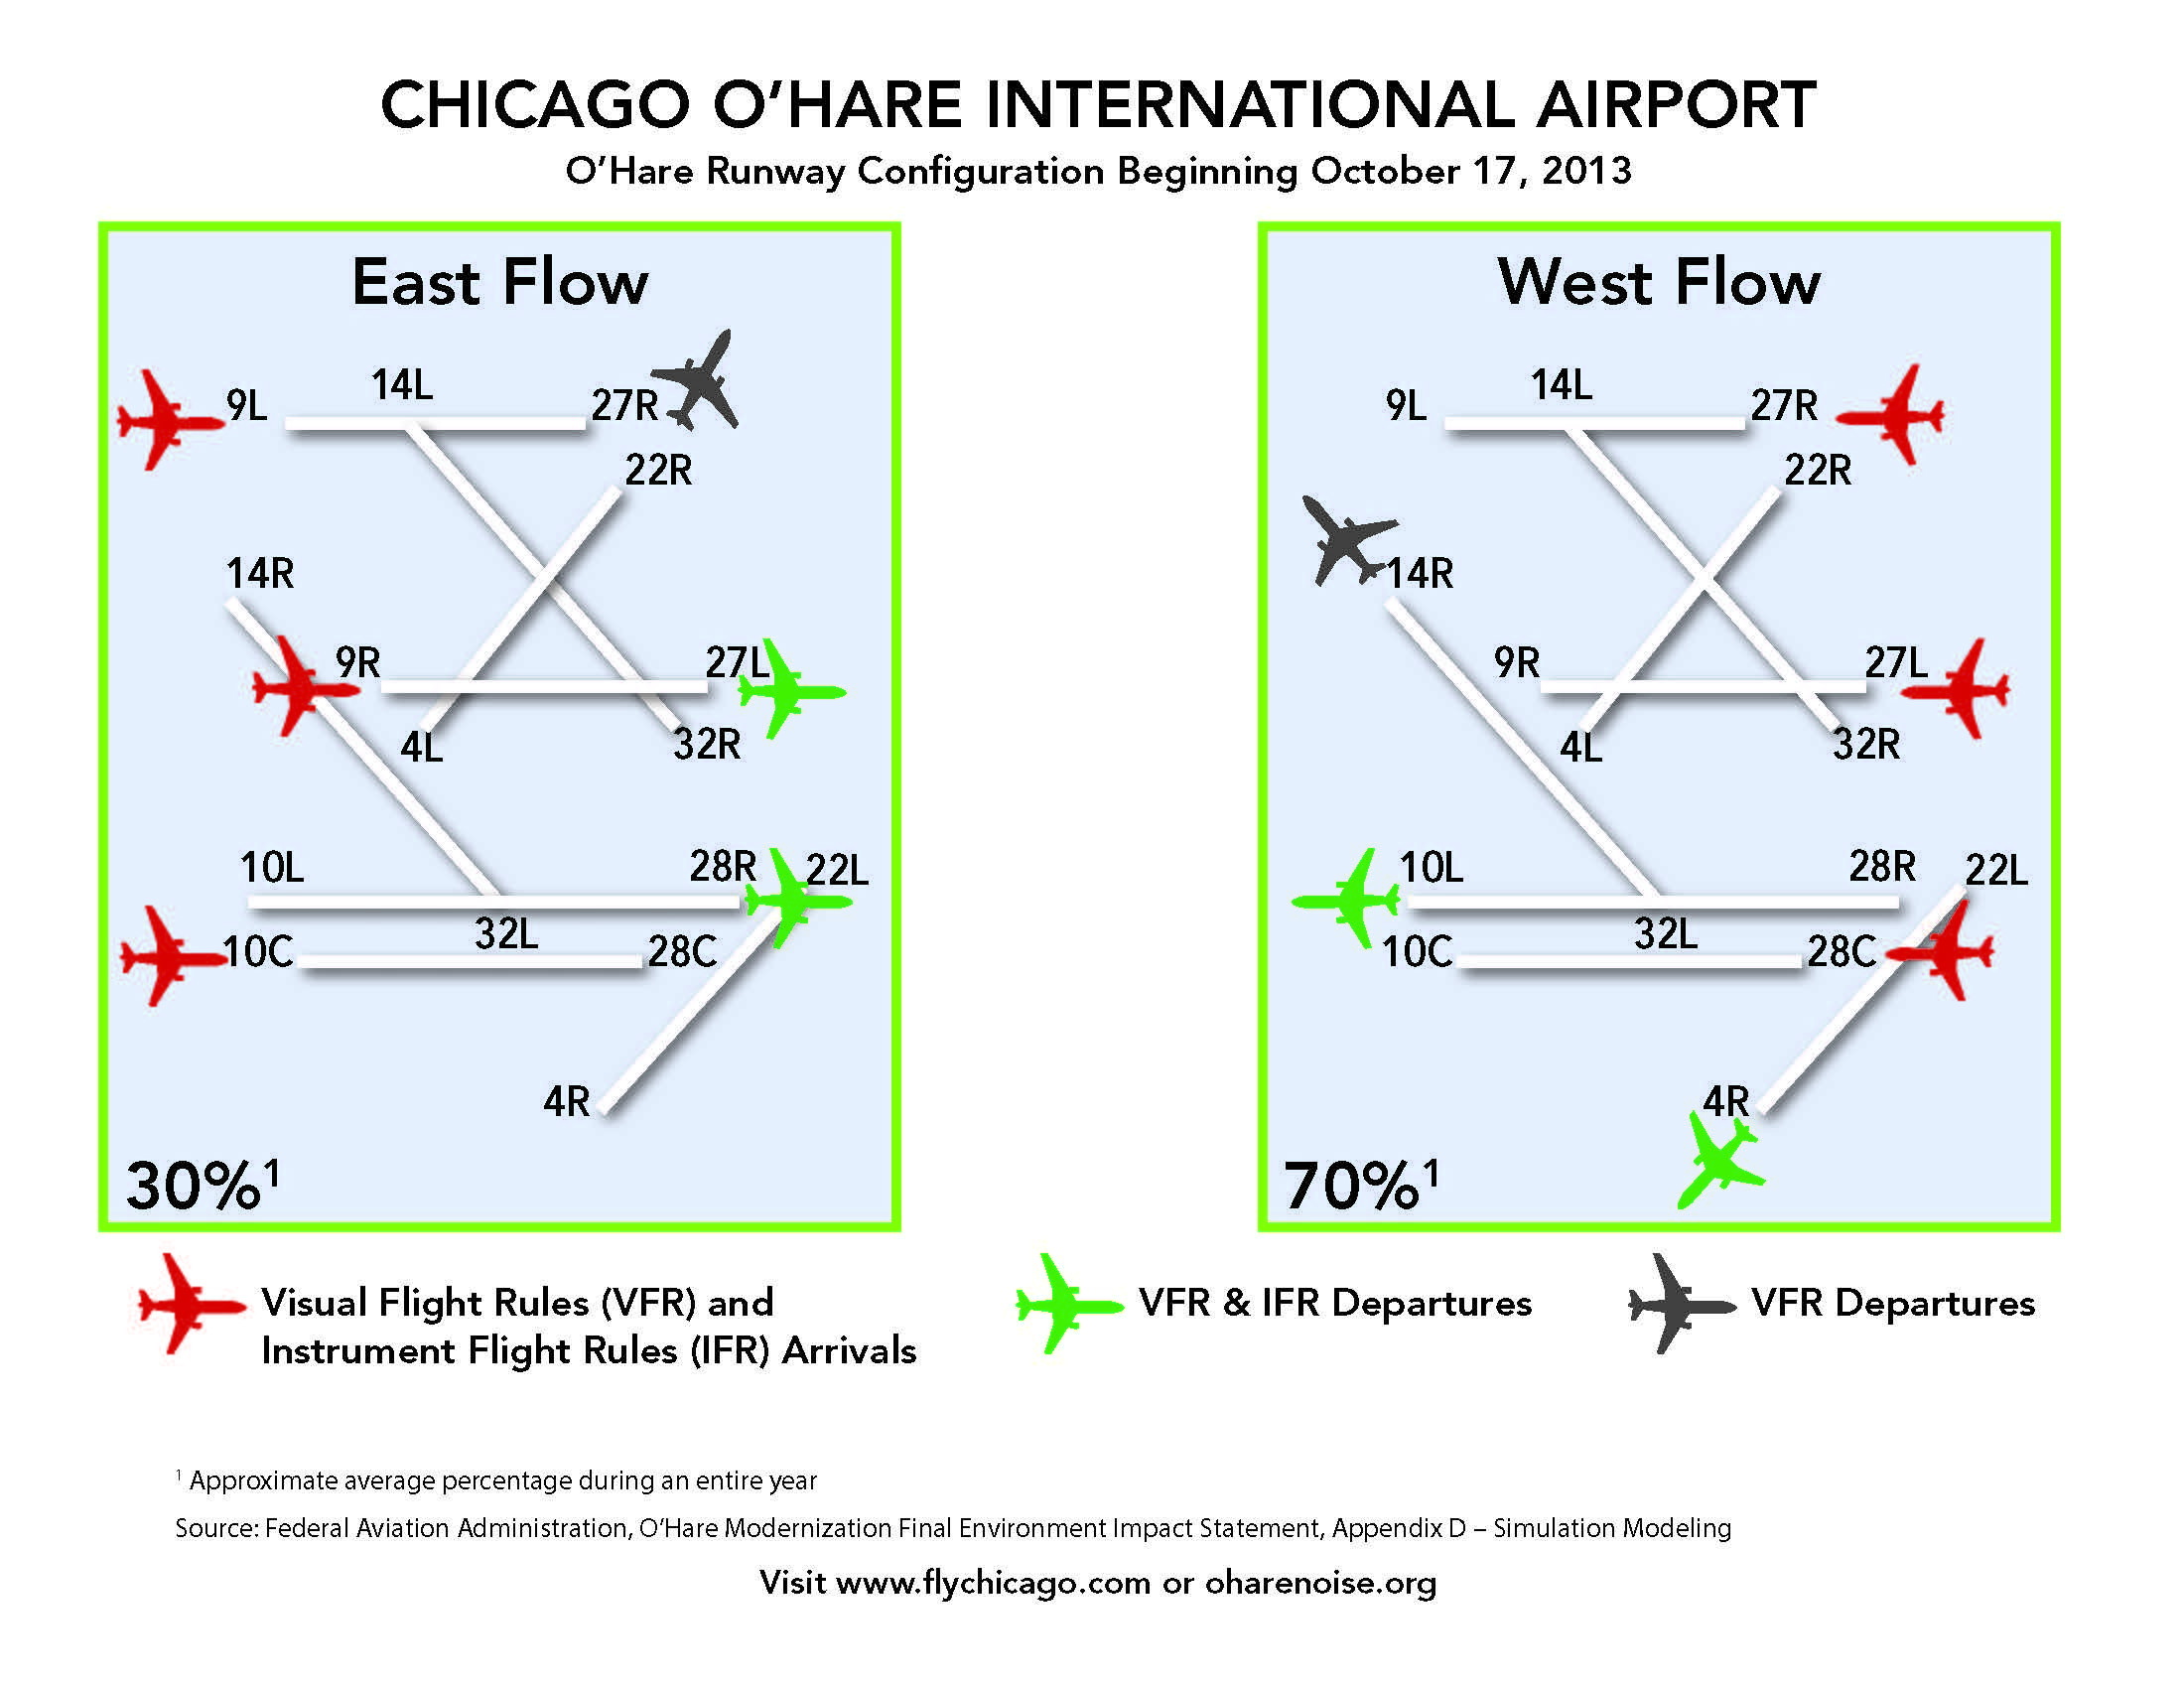 Chicago O'Hare Int'l (ORD) Airport easterly & westerly departures ...